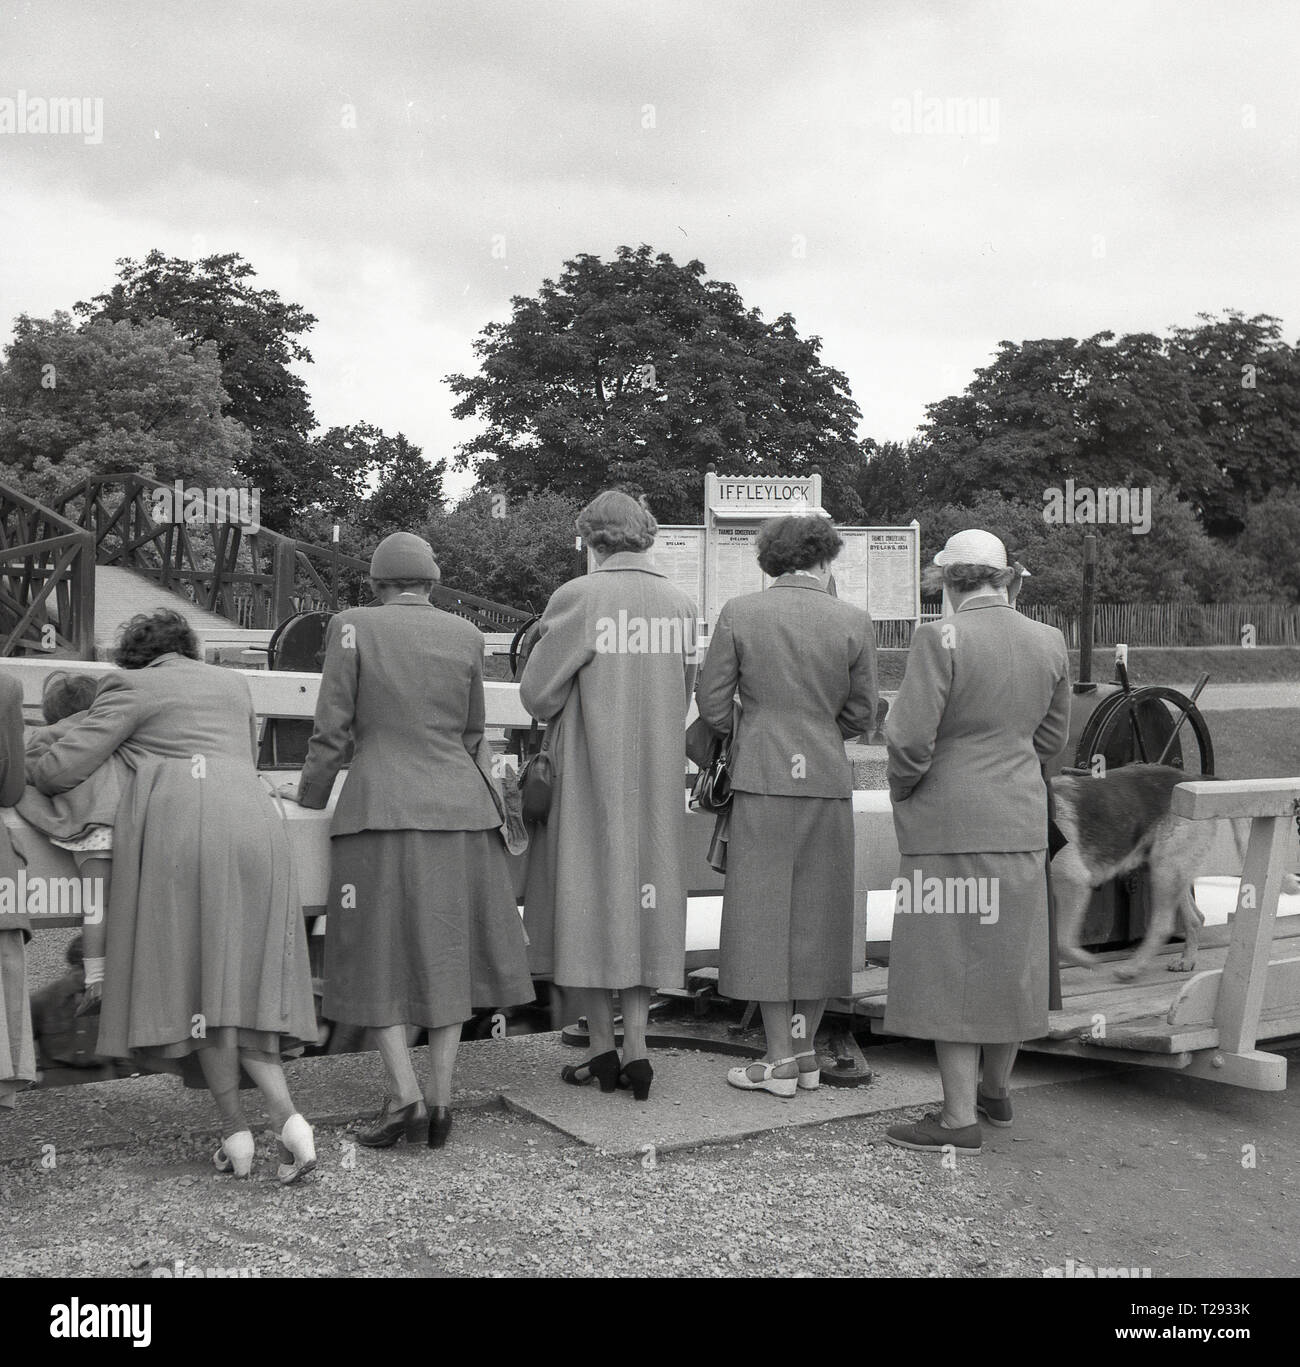 1950s, historical, a small group of mature ladies standing together by a wooden lock barrier at Iffley lock on the River Thames in Oxford, England UK. Originally built in 1631 and rebuilt in 1927 the loc's operation is via hydraulics. Stock Photo